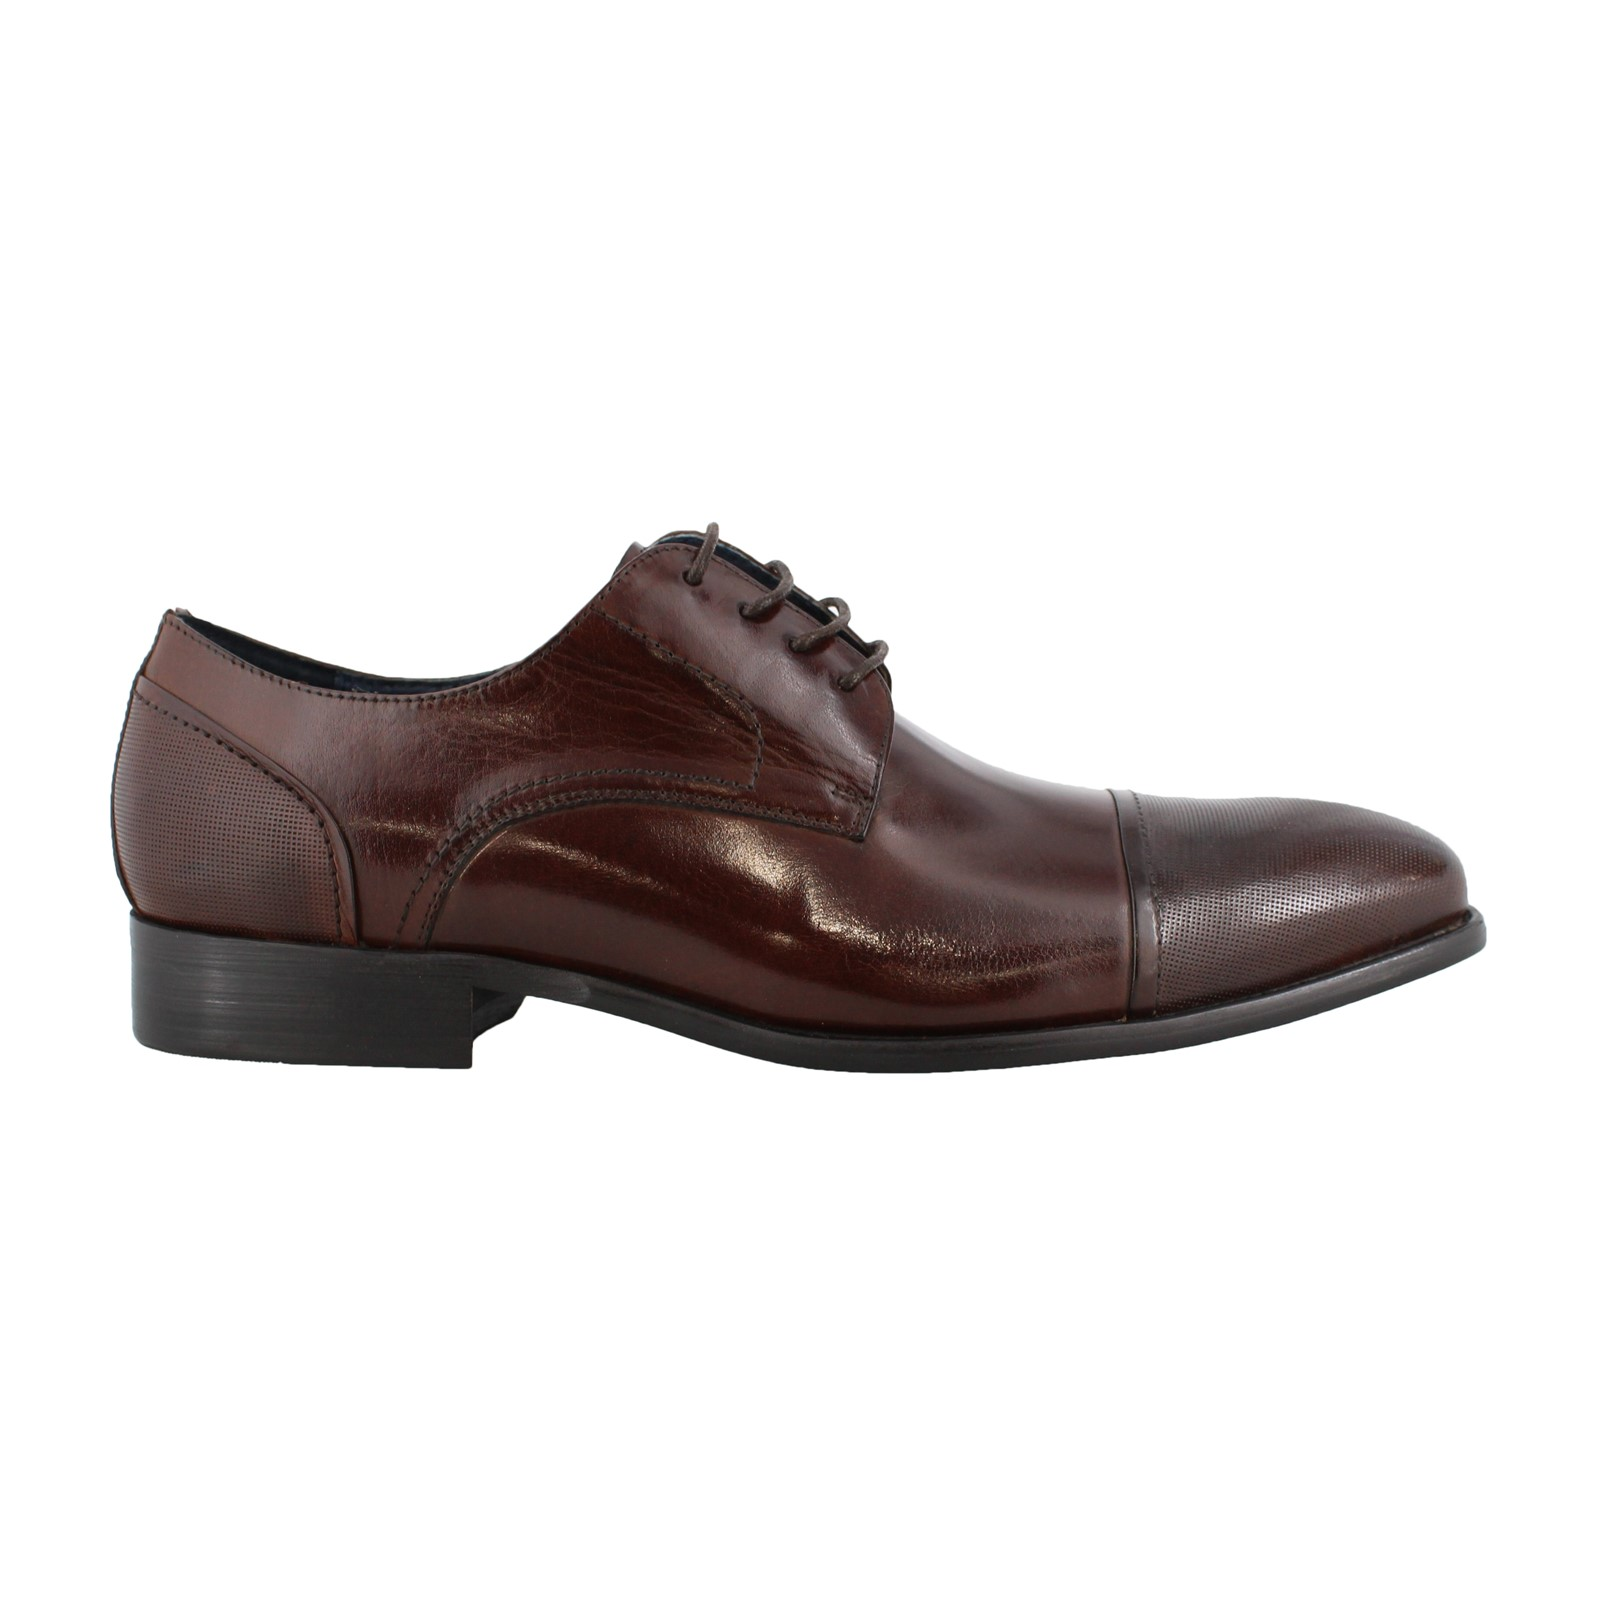 Men's Stacy Adams, Jemison Cap Toe Lace up Oxford